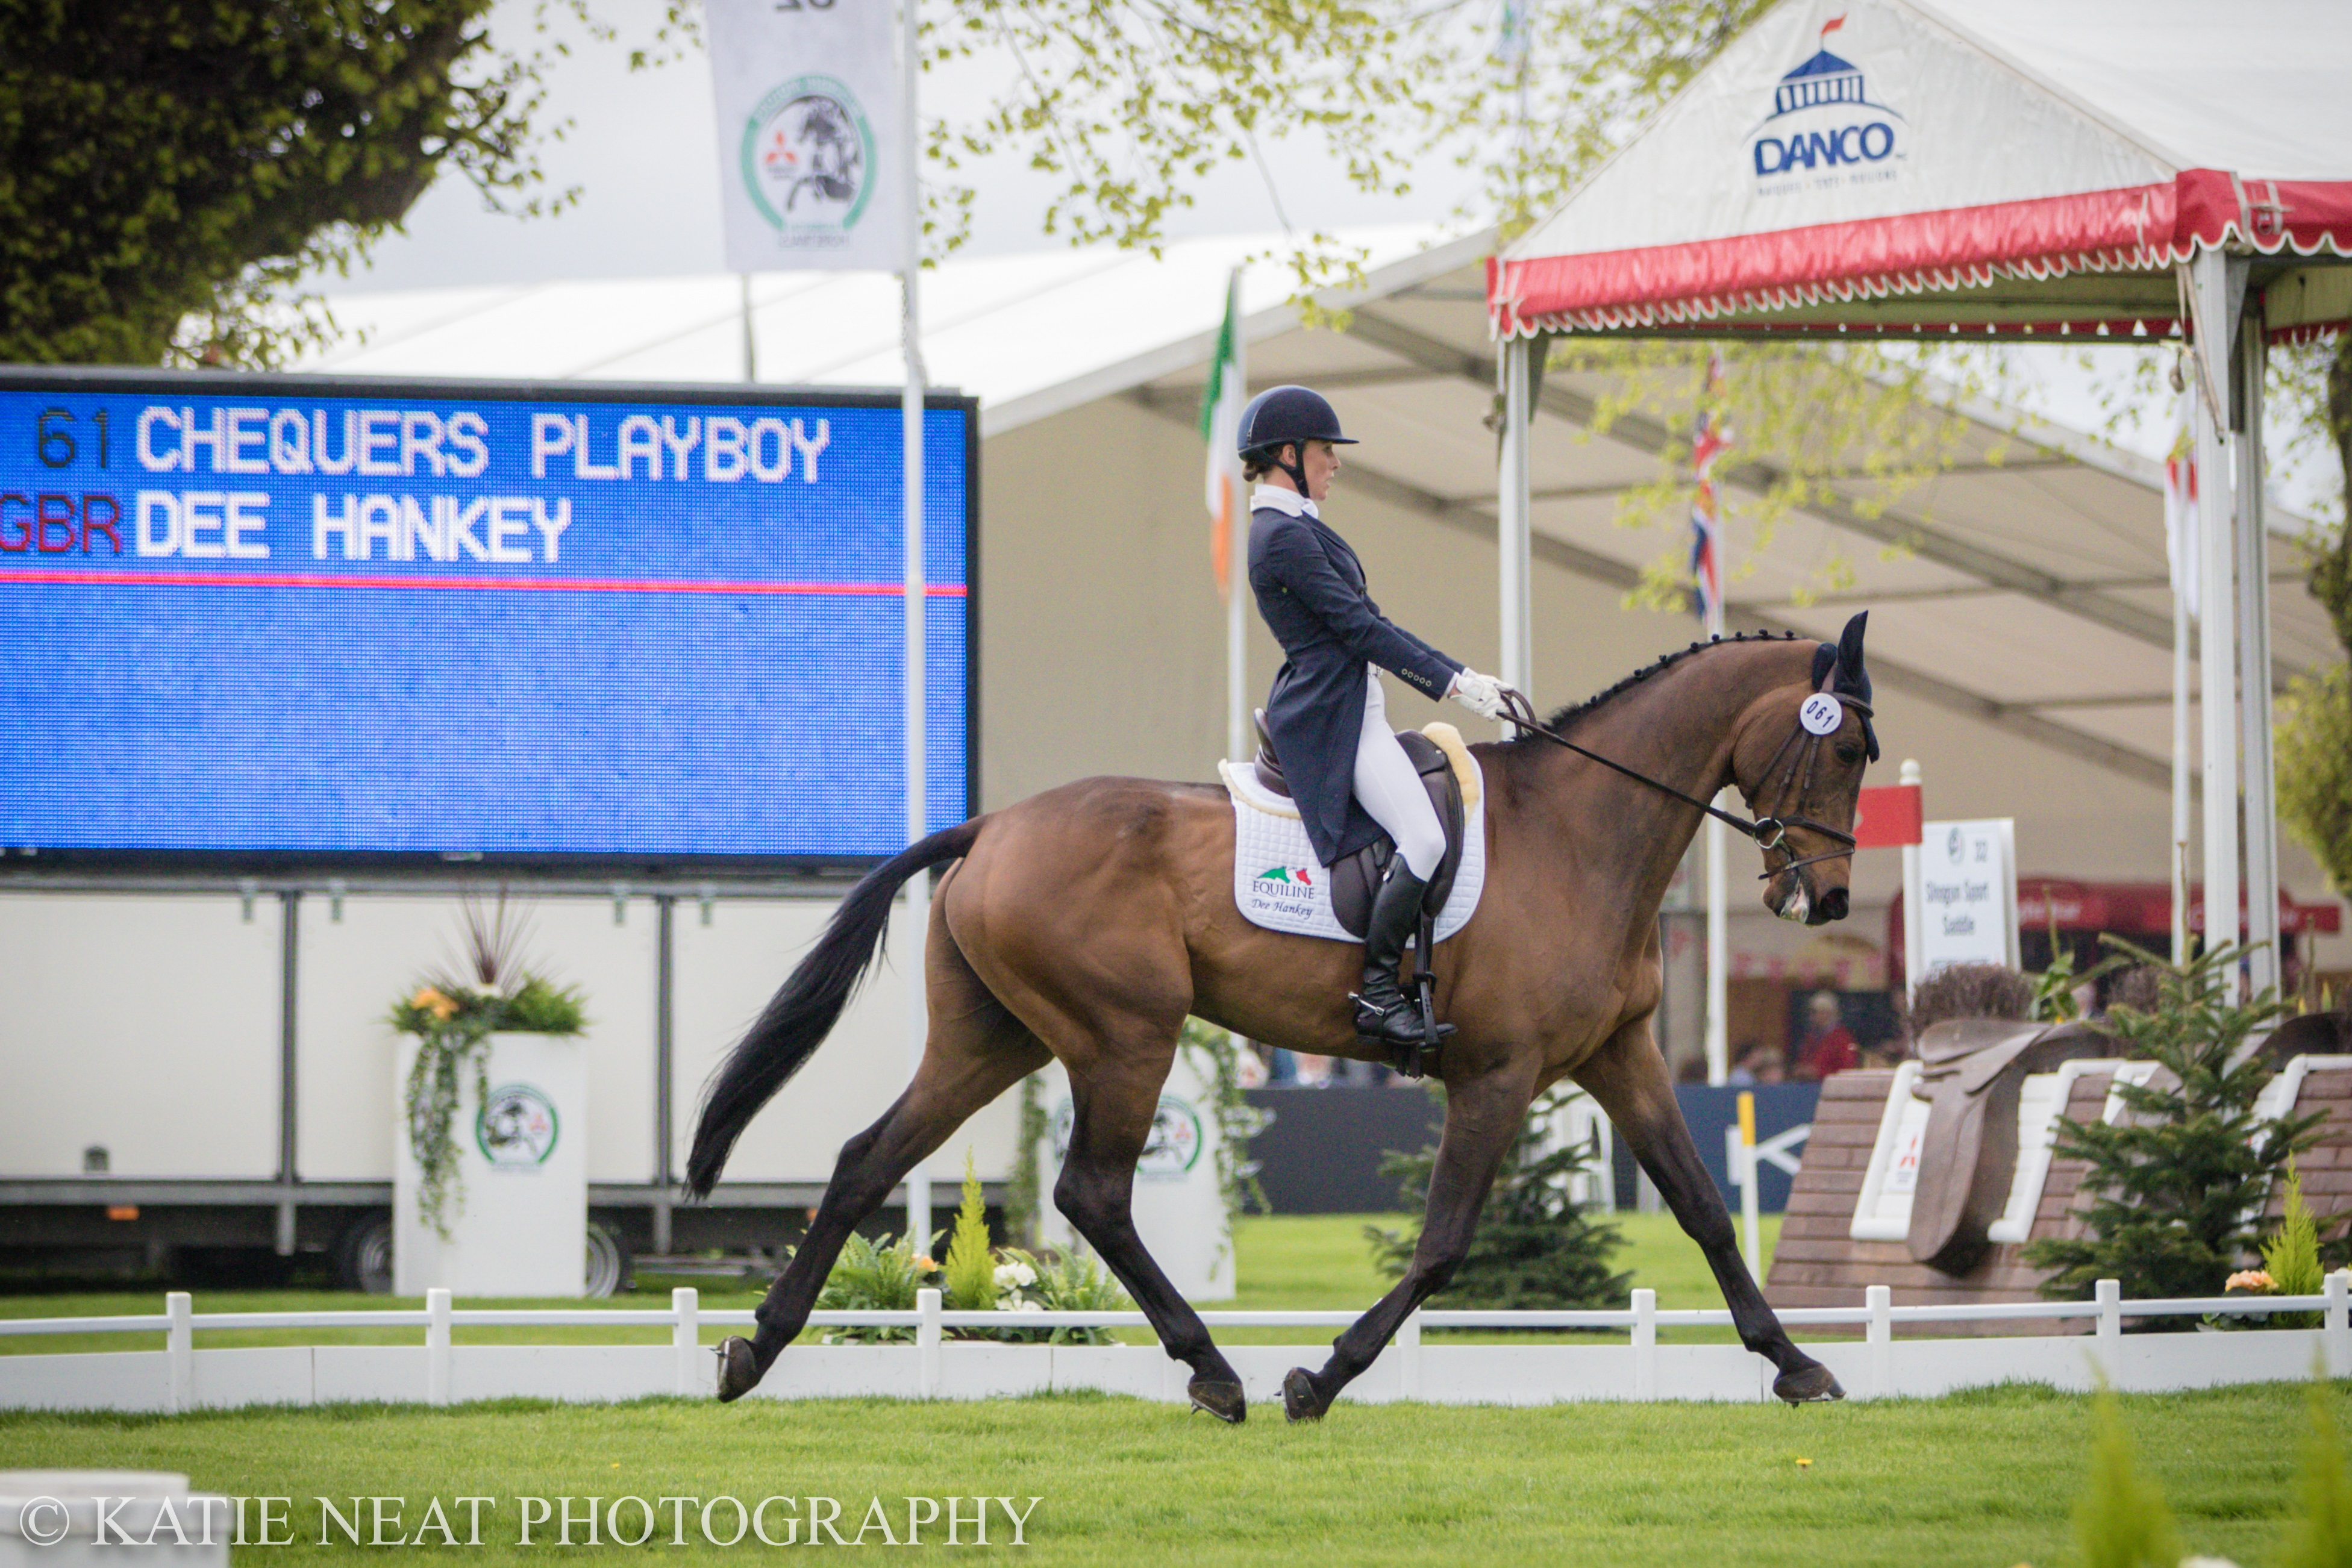 Dee Hankey and Chequers Playboy 2018 at Badminton